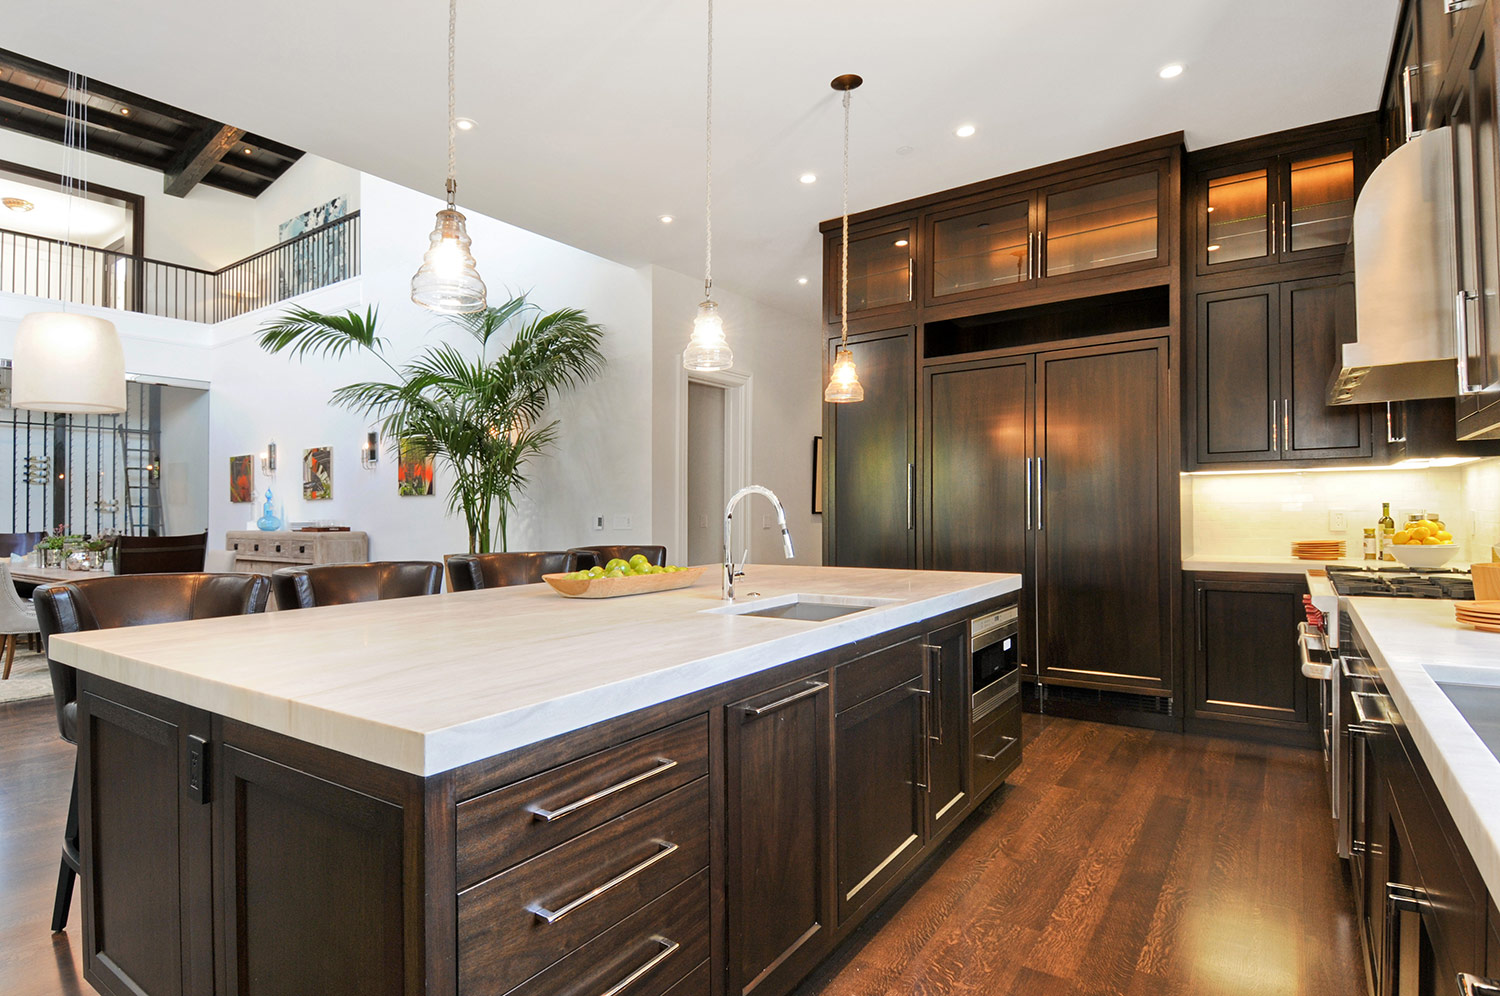 ktichen, cabinetry, hardwood floors, wolf stove, marble counters, barstools, kitchen pendant, stainless steel range, high ceilings